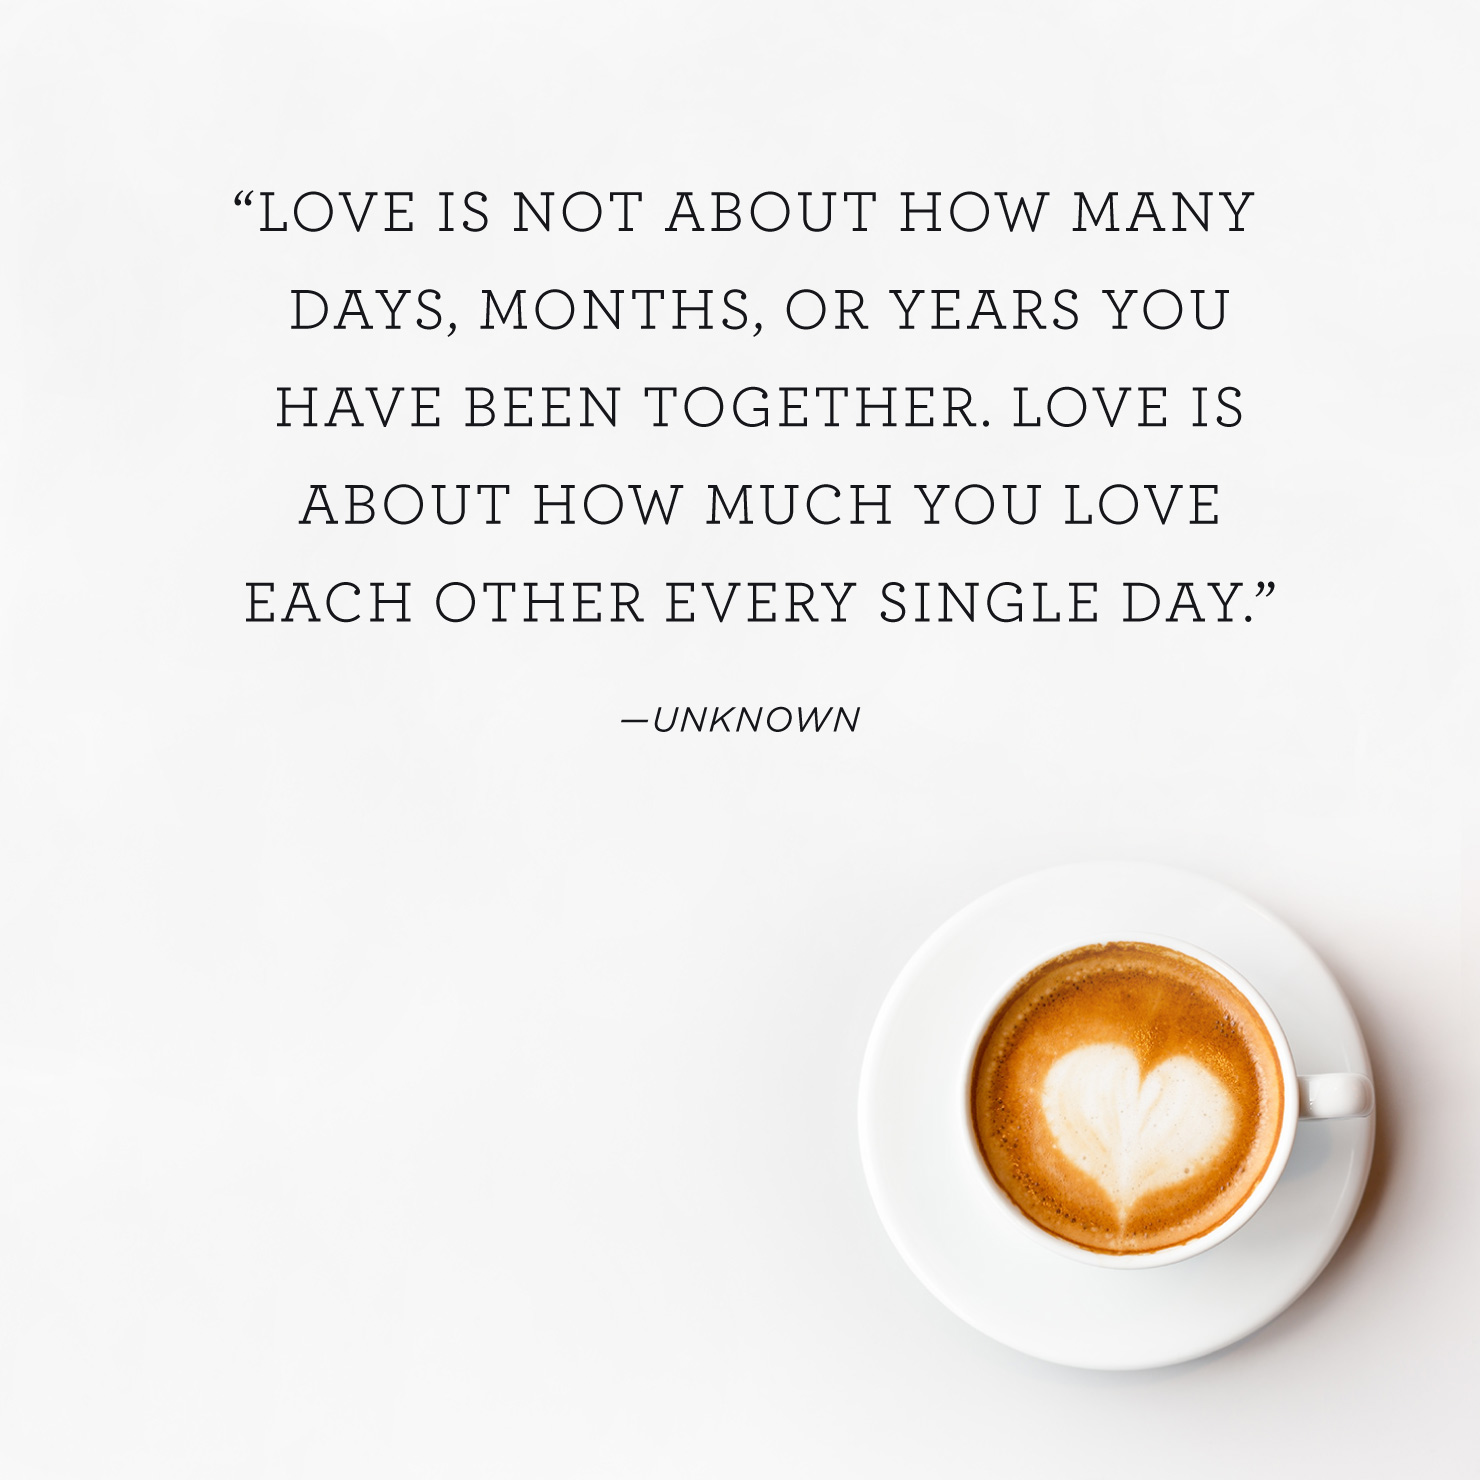 Quote above background image: Love is not about how many days, months, or years you have been together. Love is about how much you love each other every single day. - Unknown